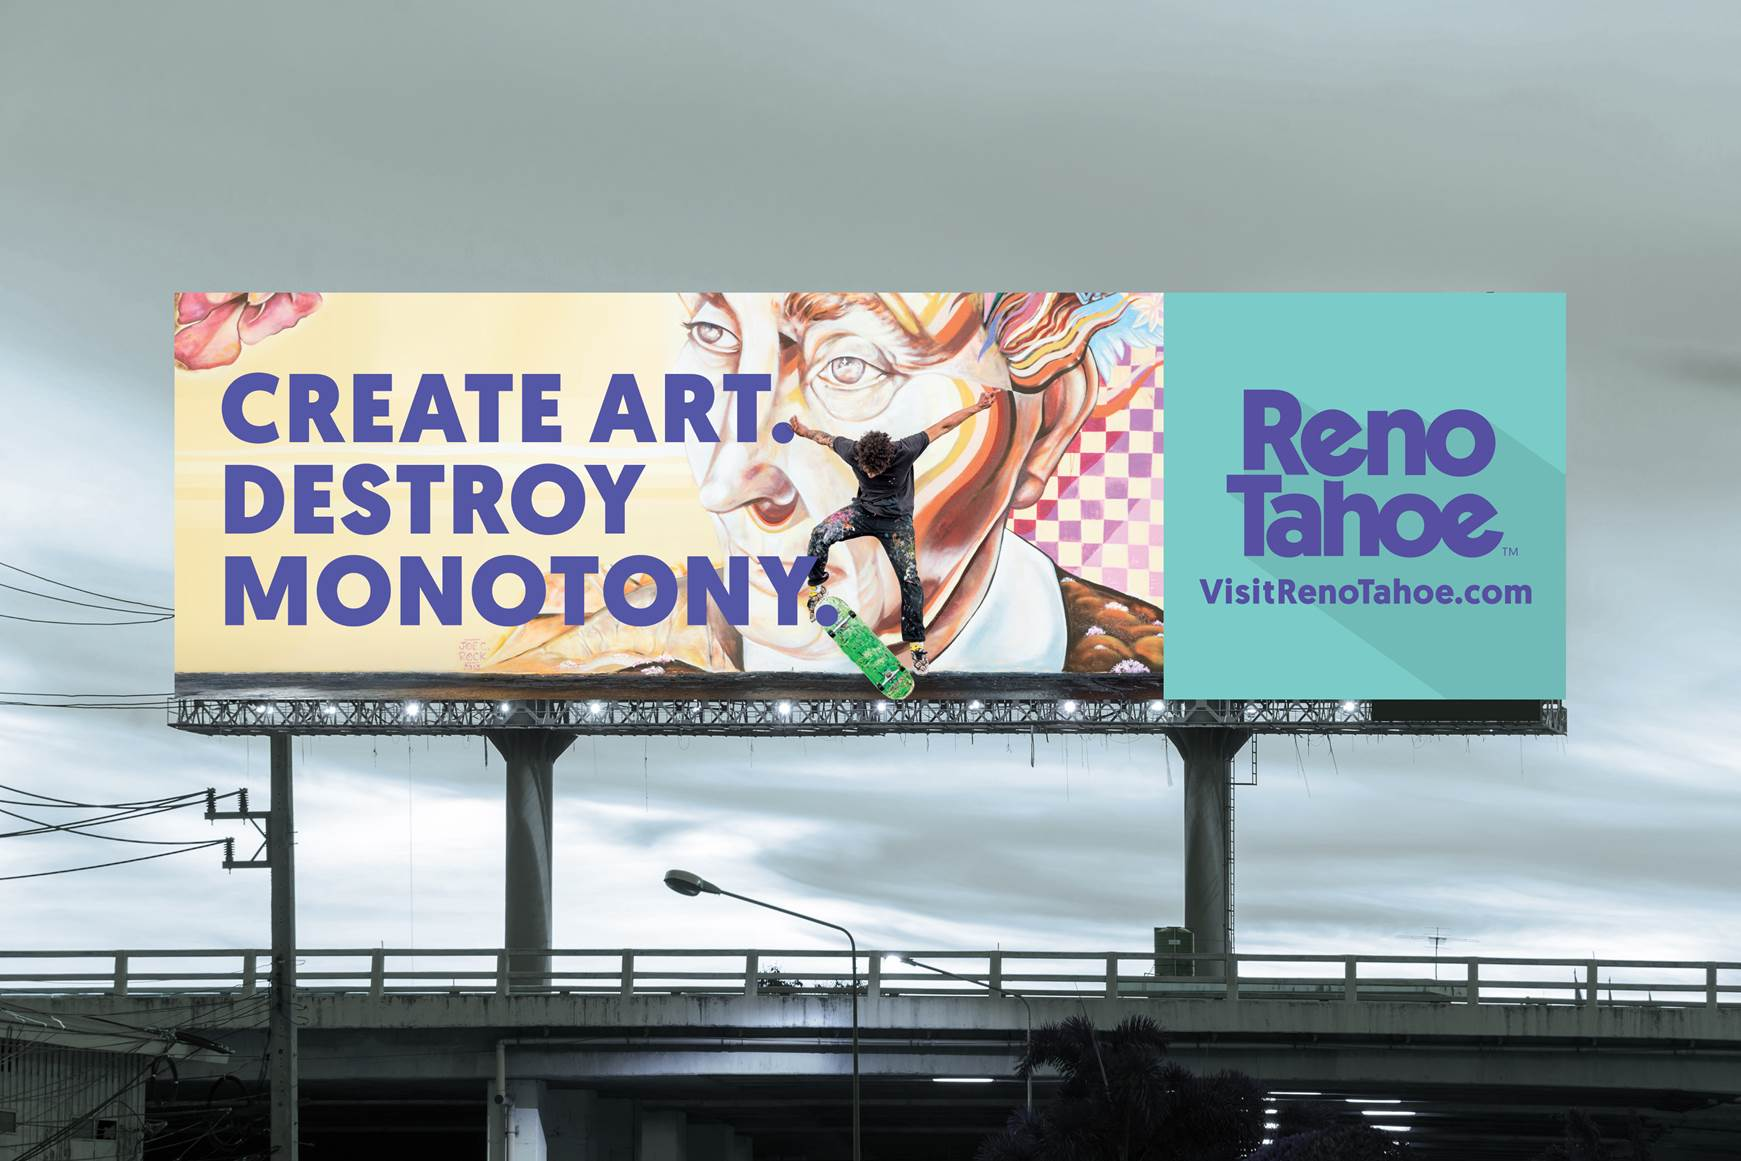 "'CREATE ART DESTROY MONOTONY"" is one of the billboards that will be seen throughout the Bay Area, Los Angeles and Seattle area."